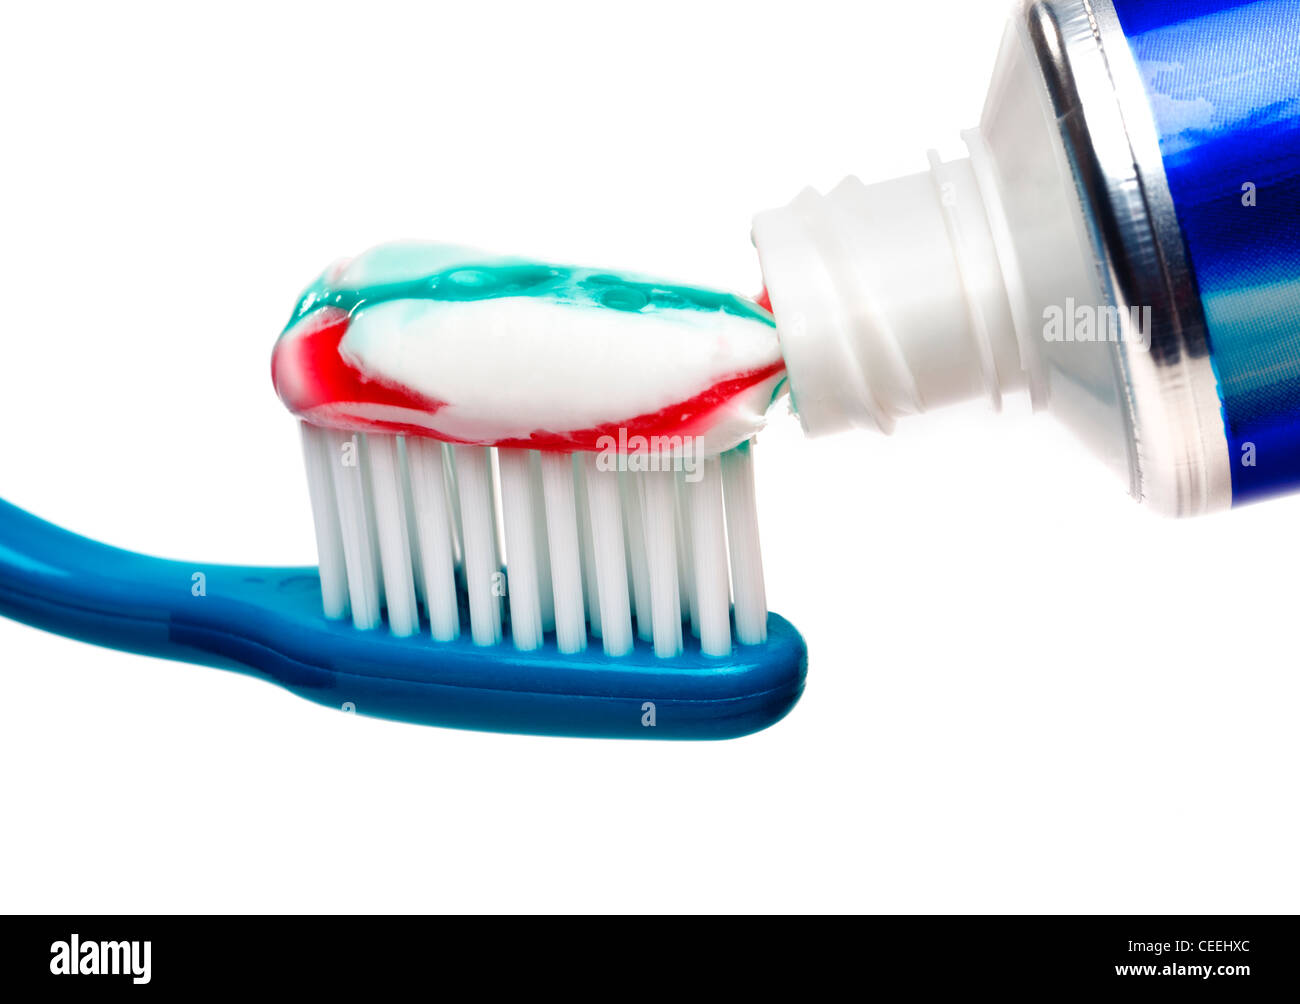 Tooth brush and toothpaste tube Stock Photo